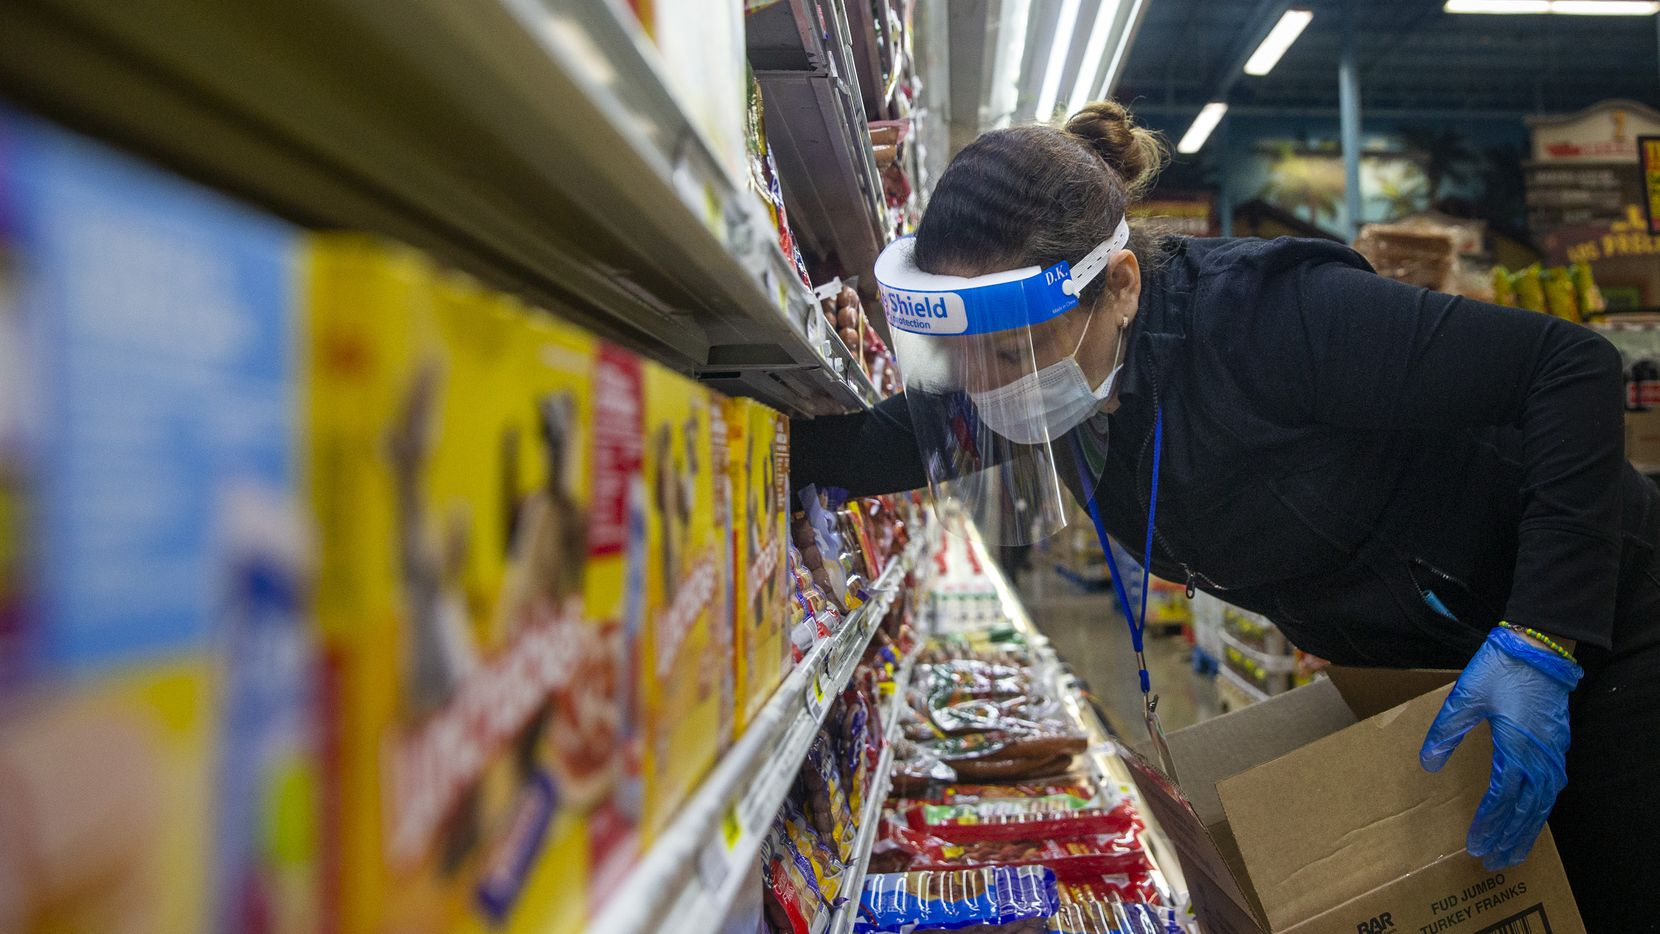 Rebecca Sierra restocks packaged meats at the El Rancho Supermercado on Gaston Avenue in Dallas during the height of the pandemic in April. The store has been taking precautionary measures against the spread of COVID-19, said store manager Eugenio Osorio.